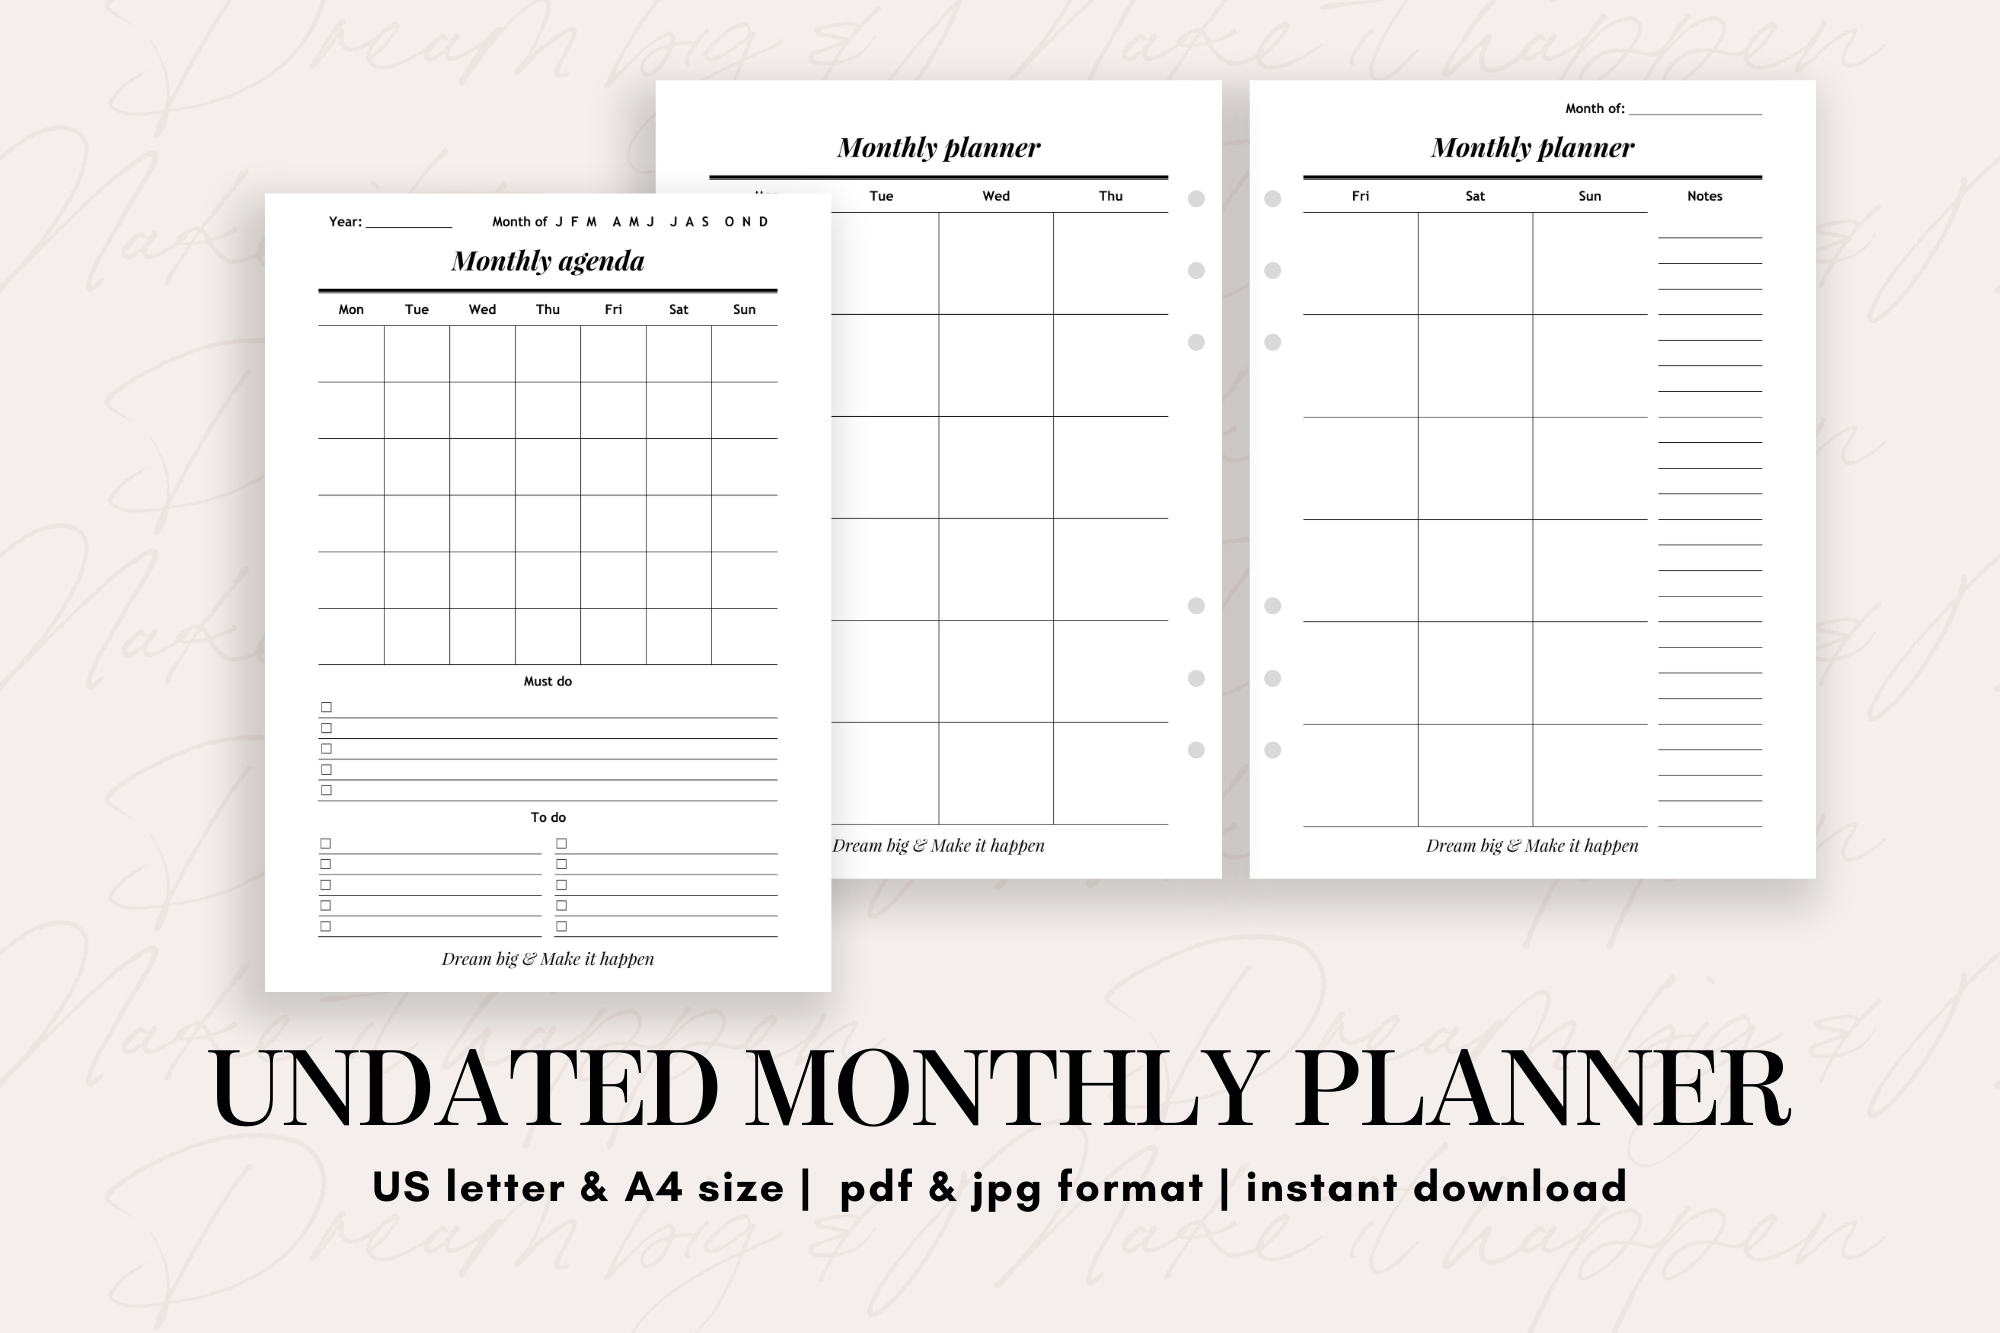 Undated Monthly Planner - teacher resources, school activities, financial planning, budgeting, art education, personal development, note taking, paper crafts, printable calendar